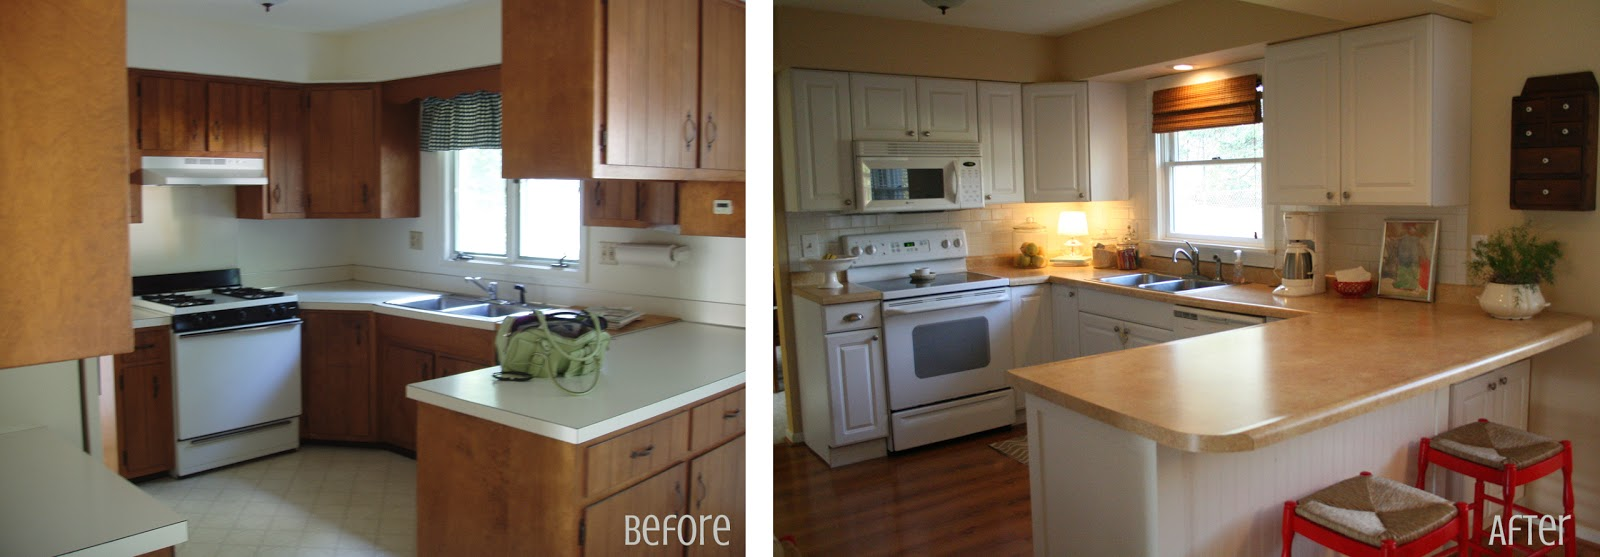 Graphic made kitchen before after - Remodeling a small kitchen before and after ...